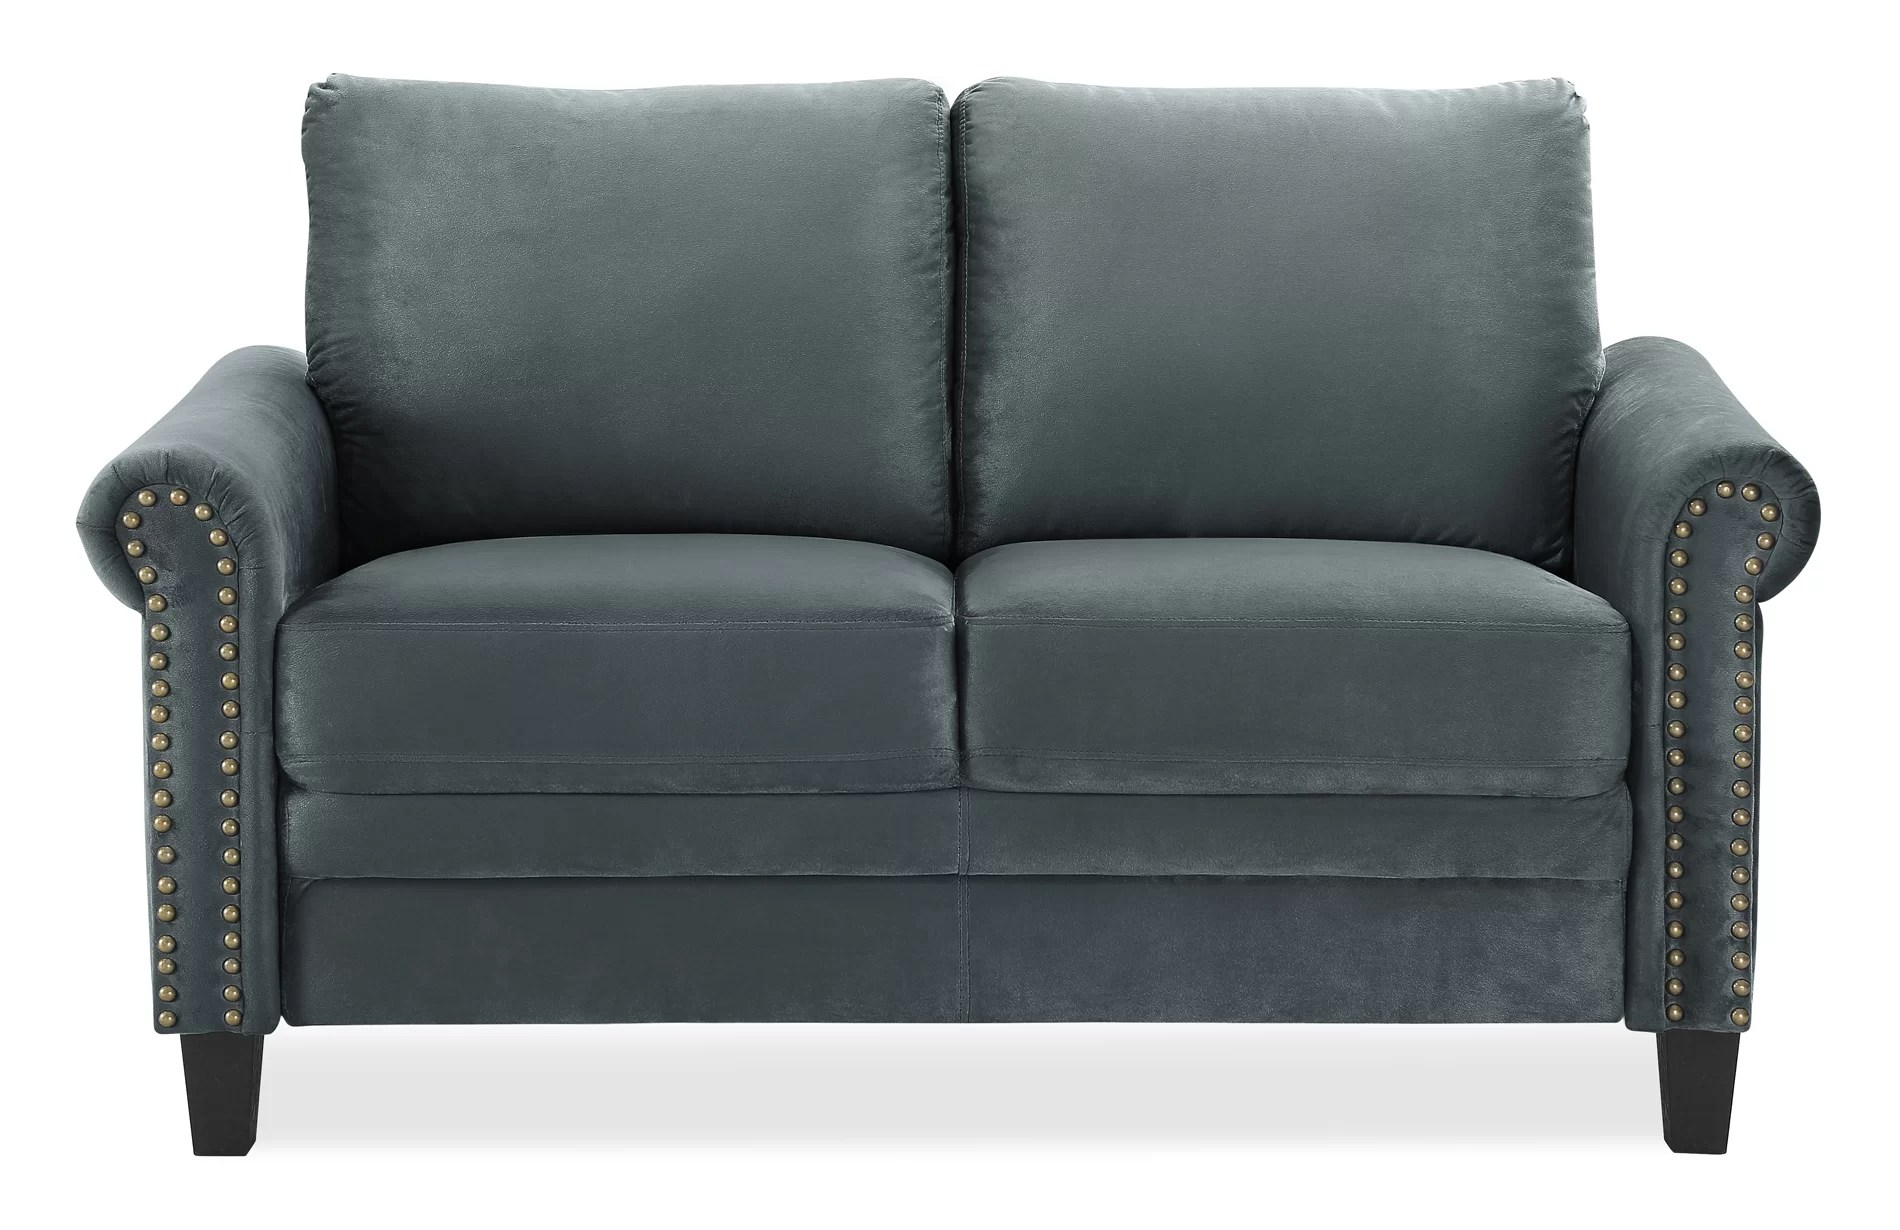 Sofa Entertainment Group Llc Chisolm Loveseat